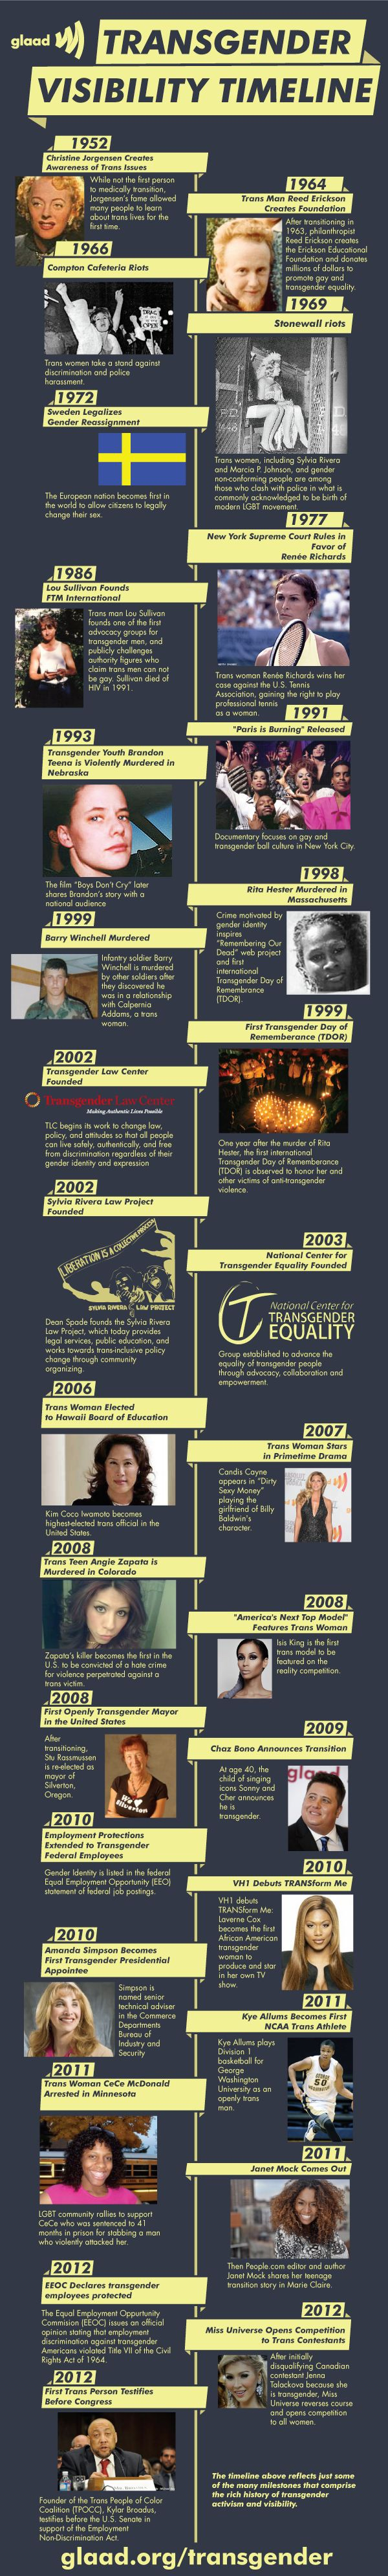 best ideas about transgender genderqueer timeline a look back at the history of transgender visibility